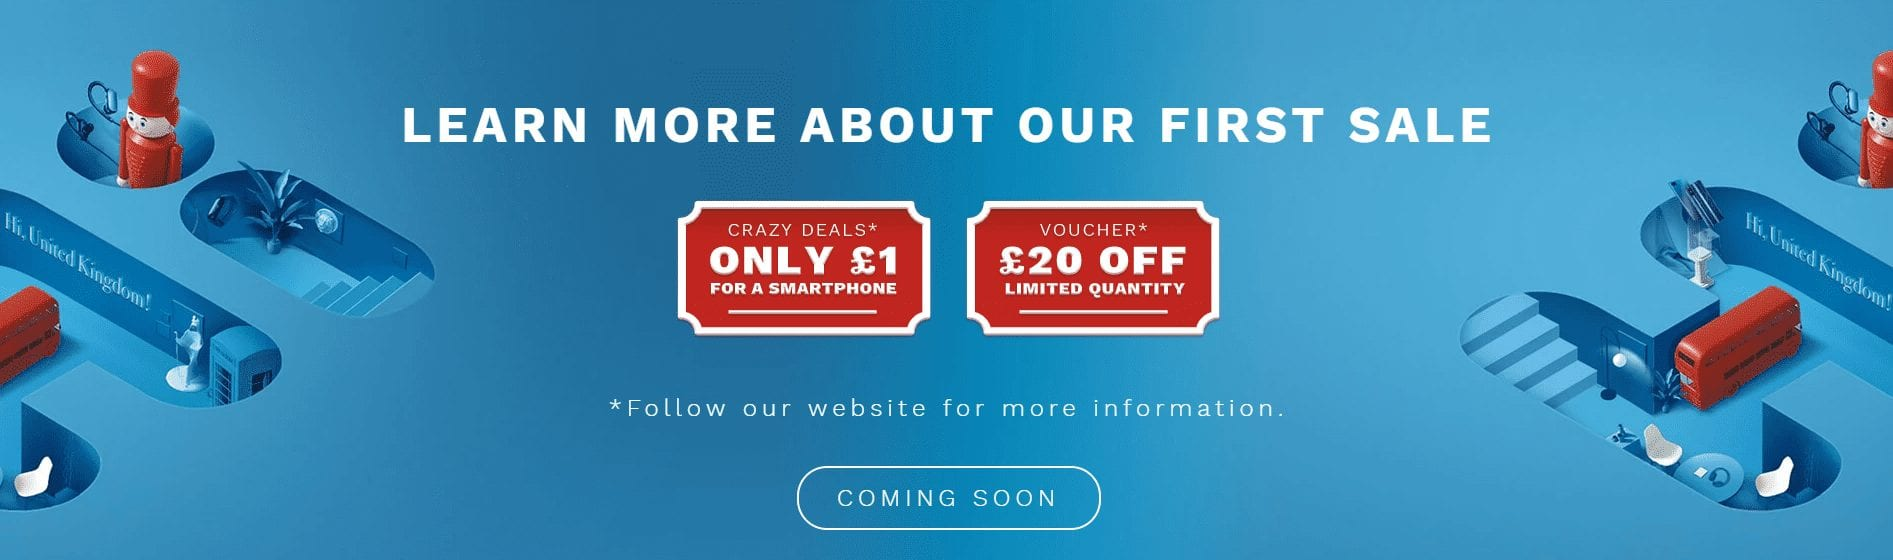 Special offers for early adopters